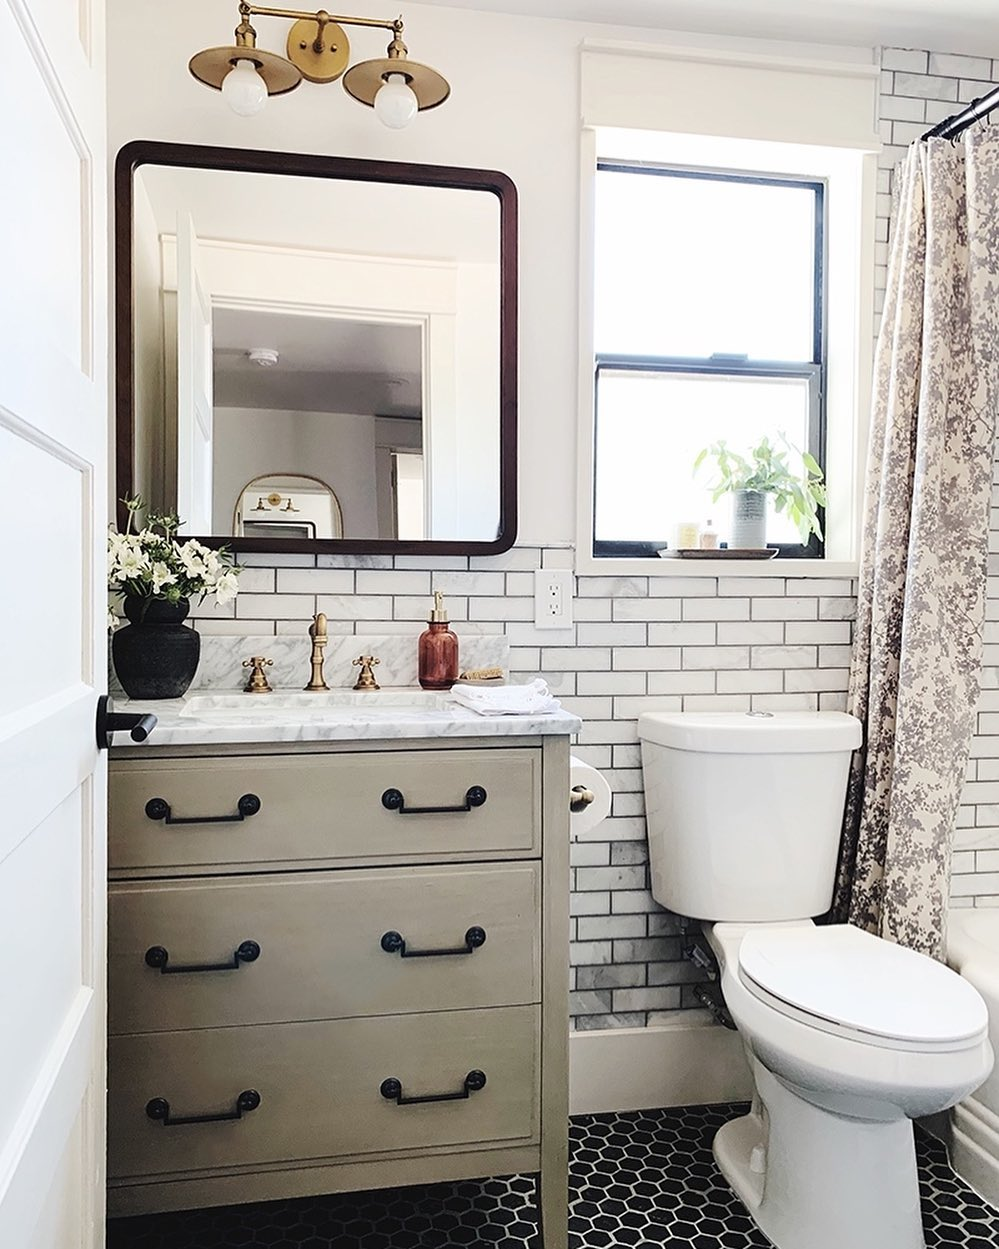 Adding A Bathroom Is Always A Good Idea For Resale If You Can Manage To Carve Out A 5x8 Space You Can Fit In A Small But Big Enough Full Add A Bathroom Evergreen